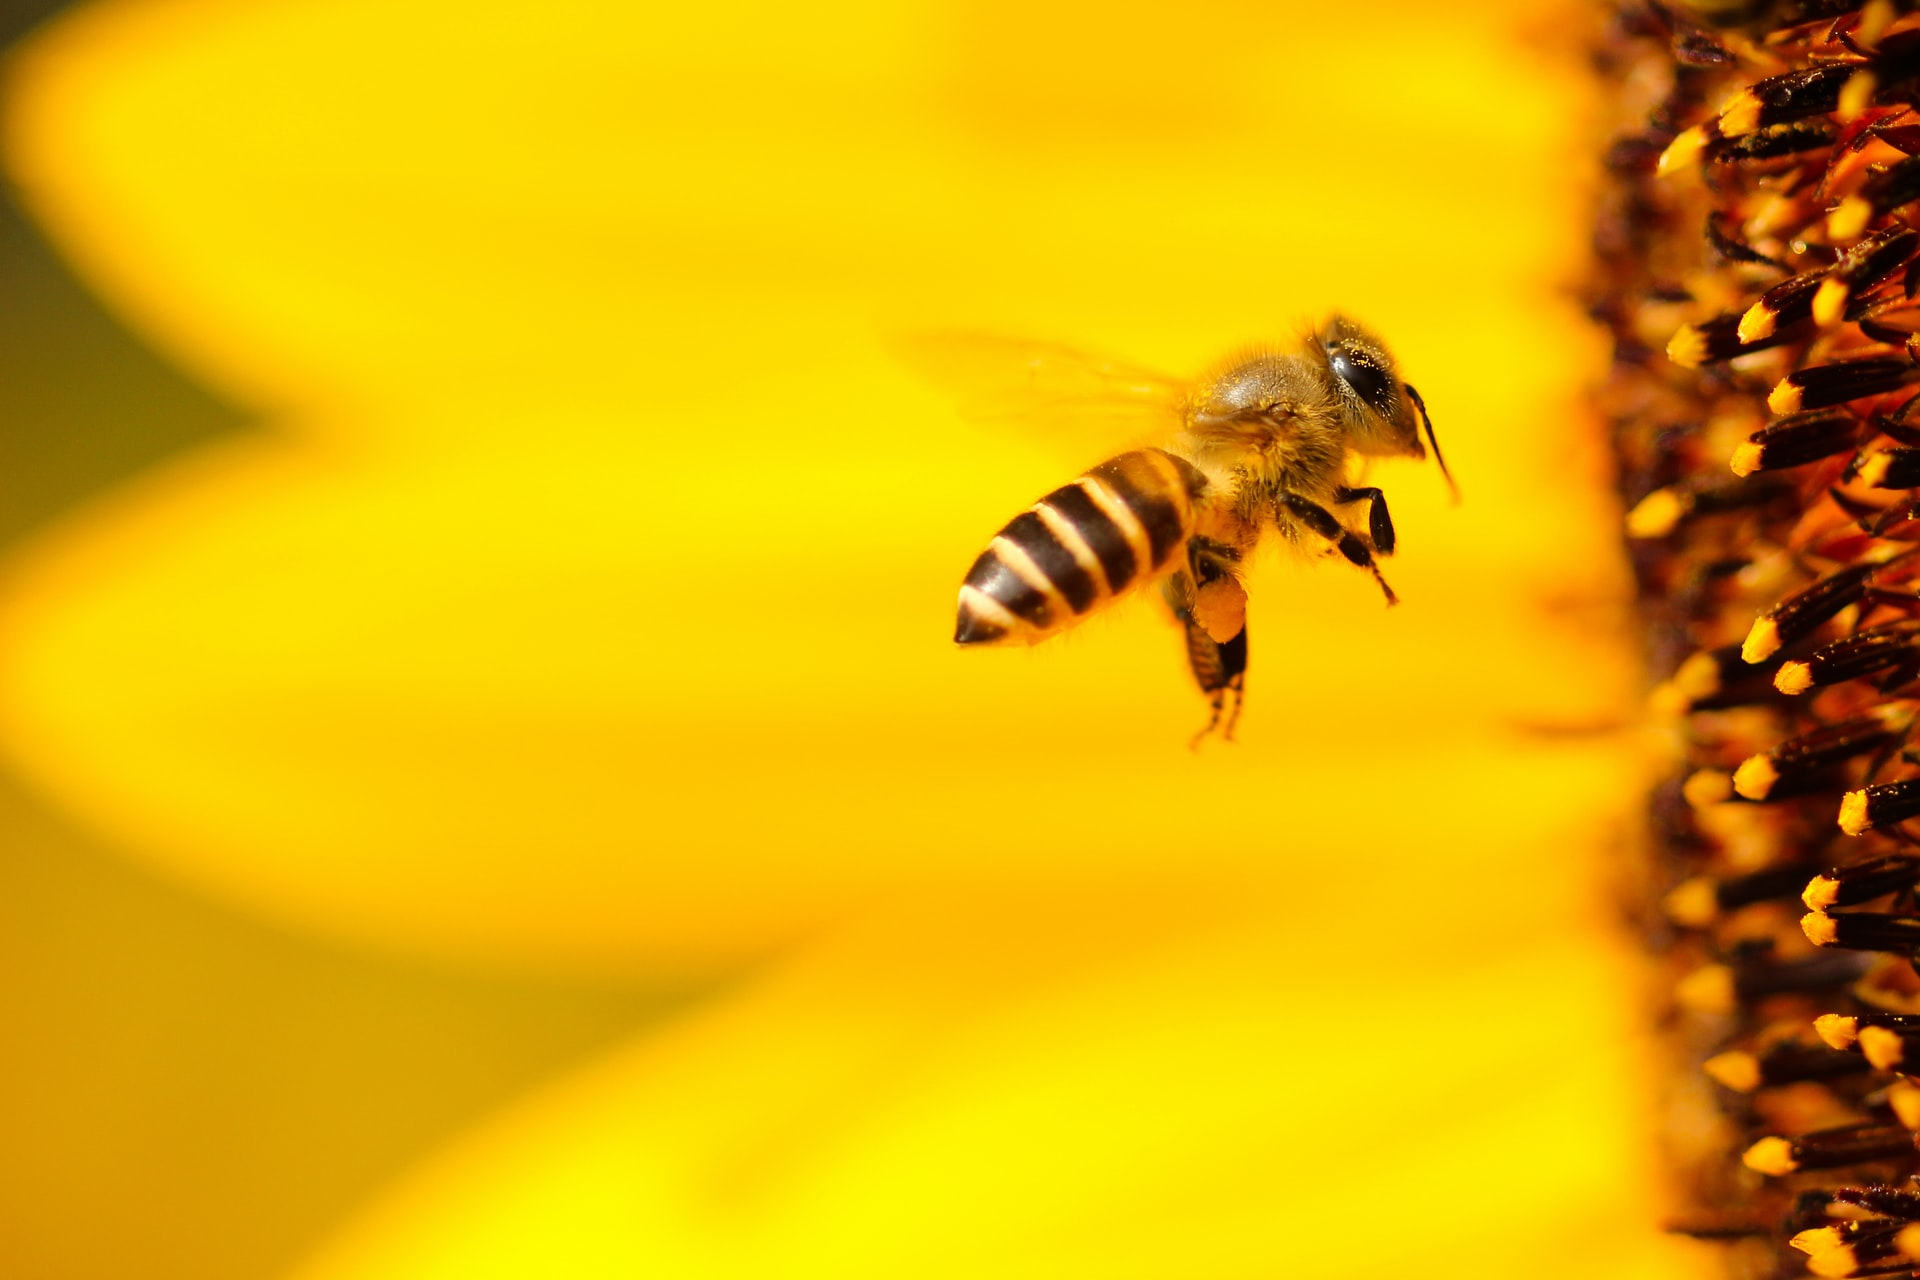 BEE FRIENDLY: HELP THE BEES